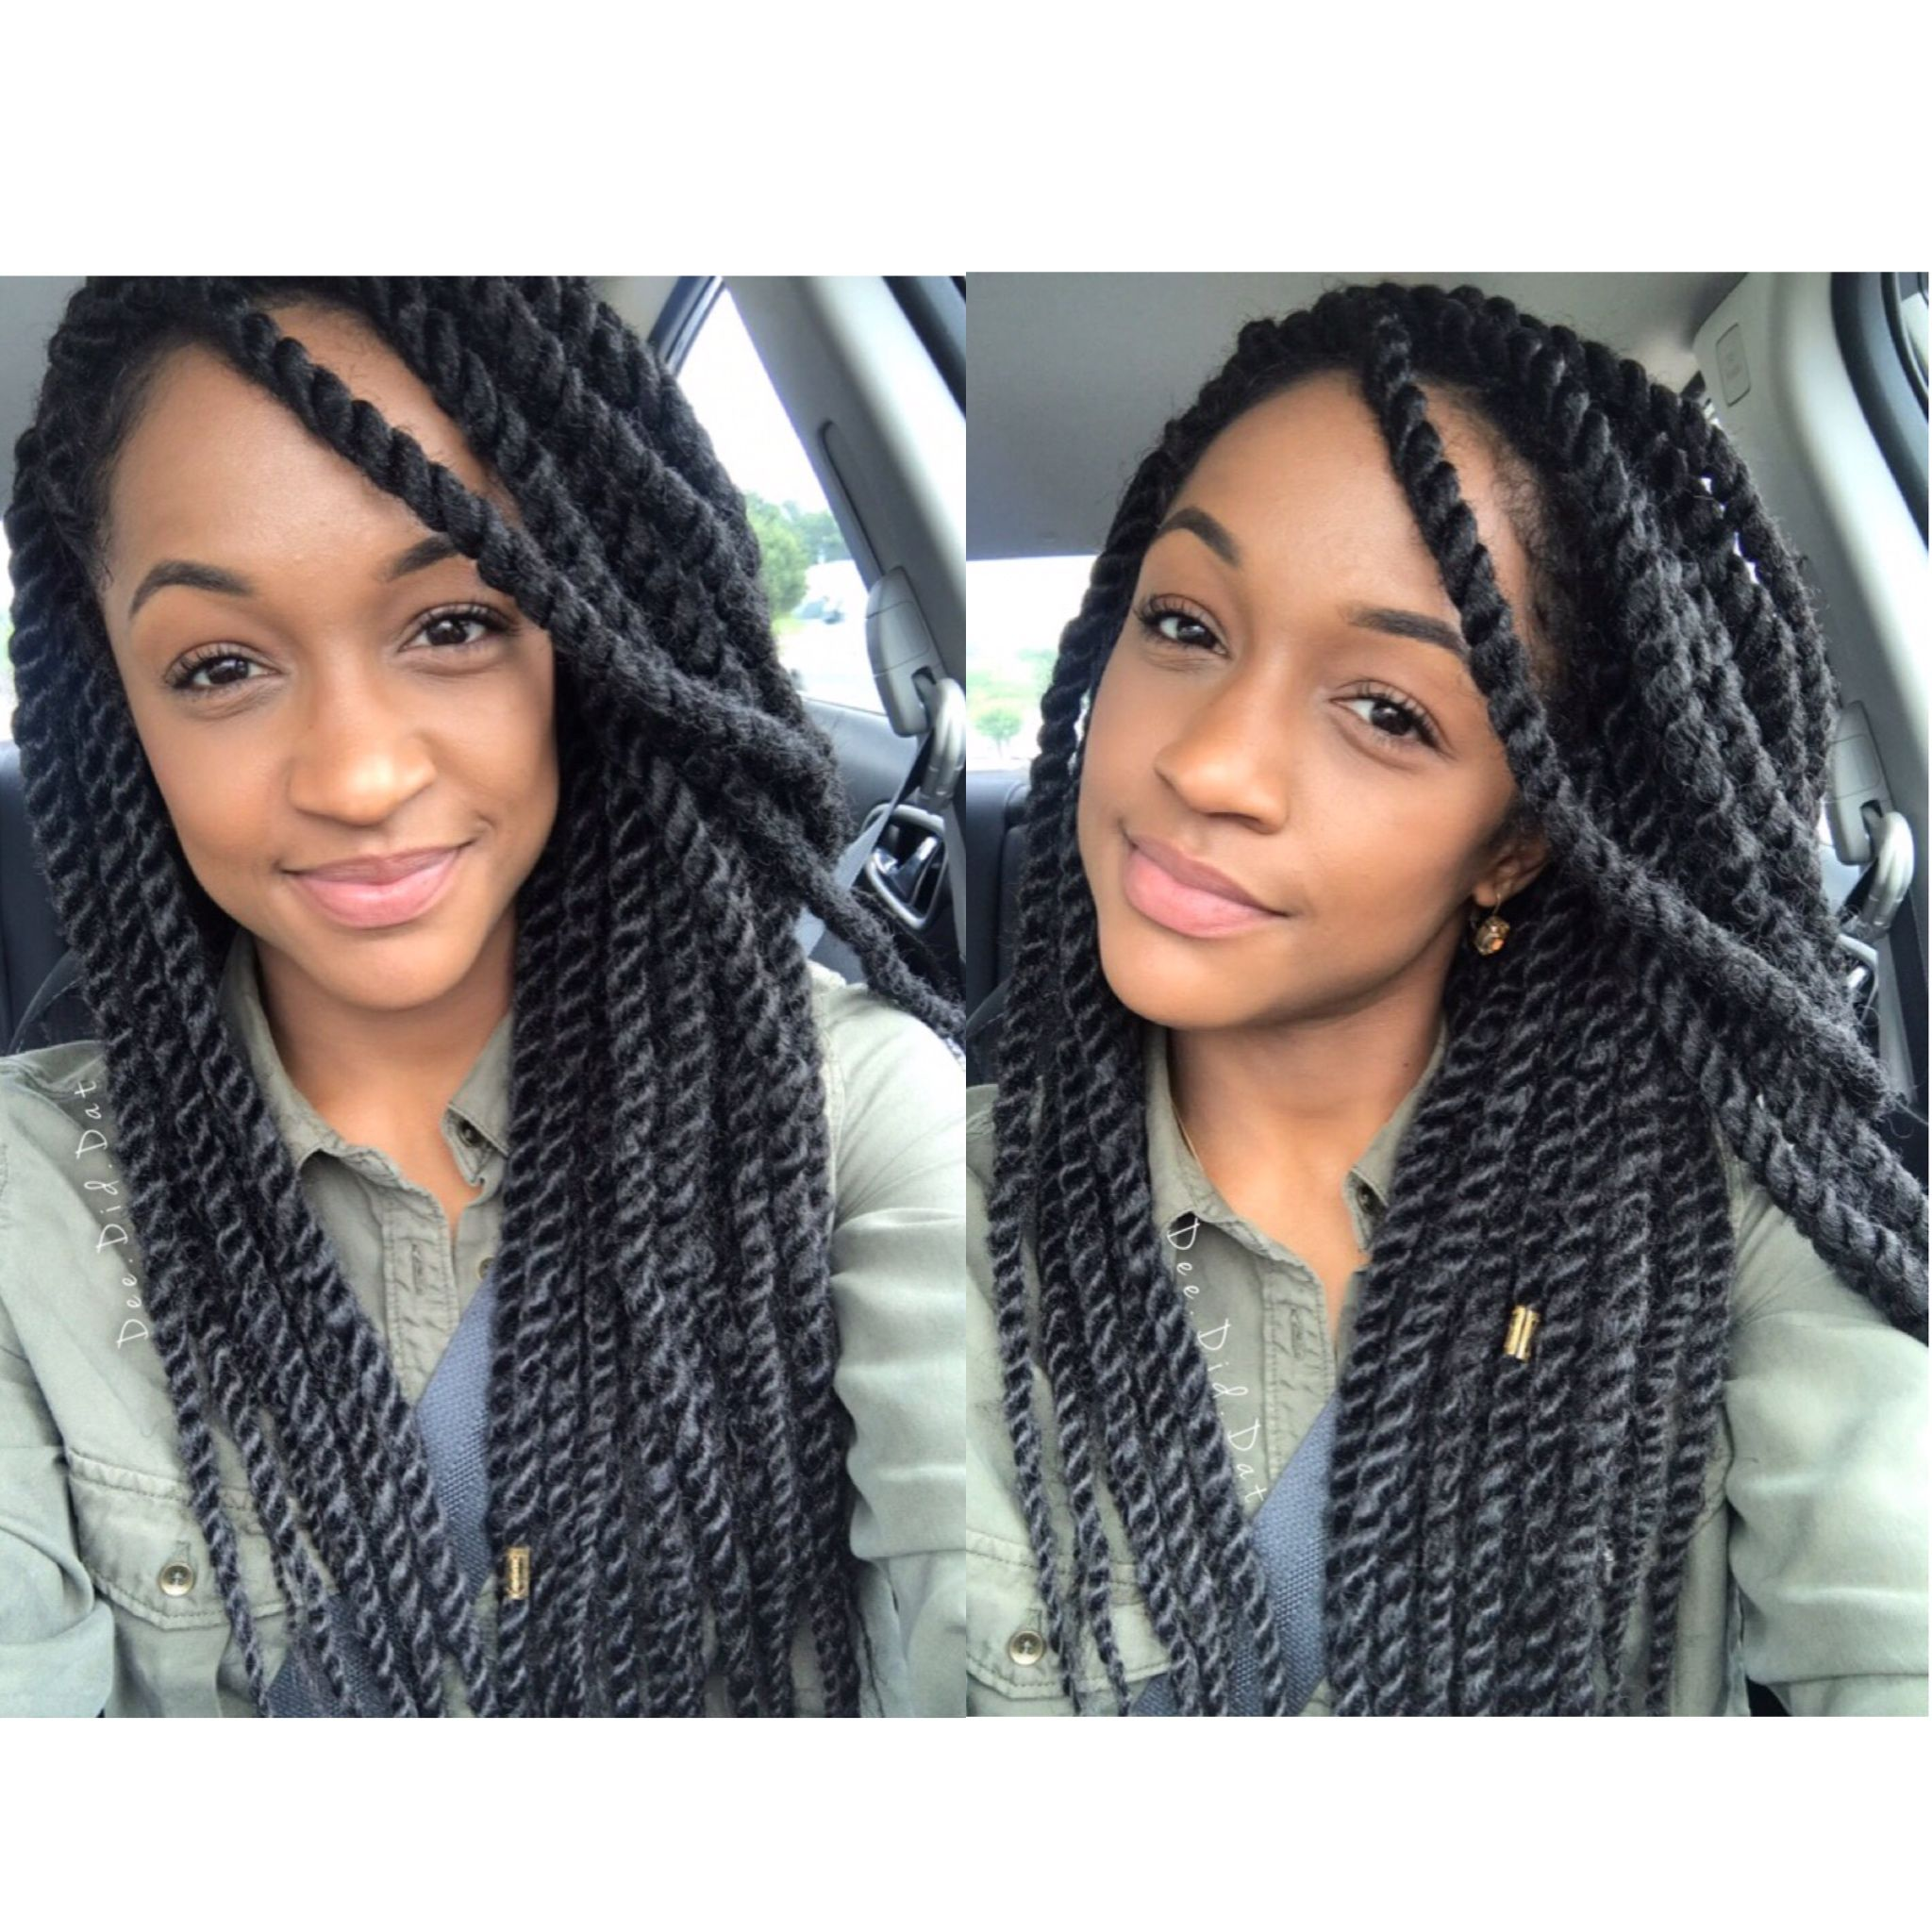 Medium marley twists . Protective styles by @dee.did.dat ...